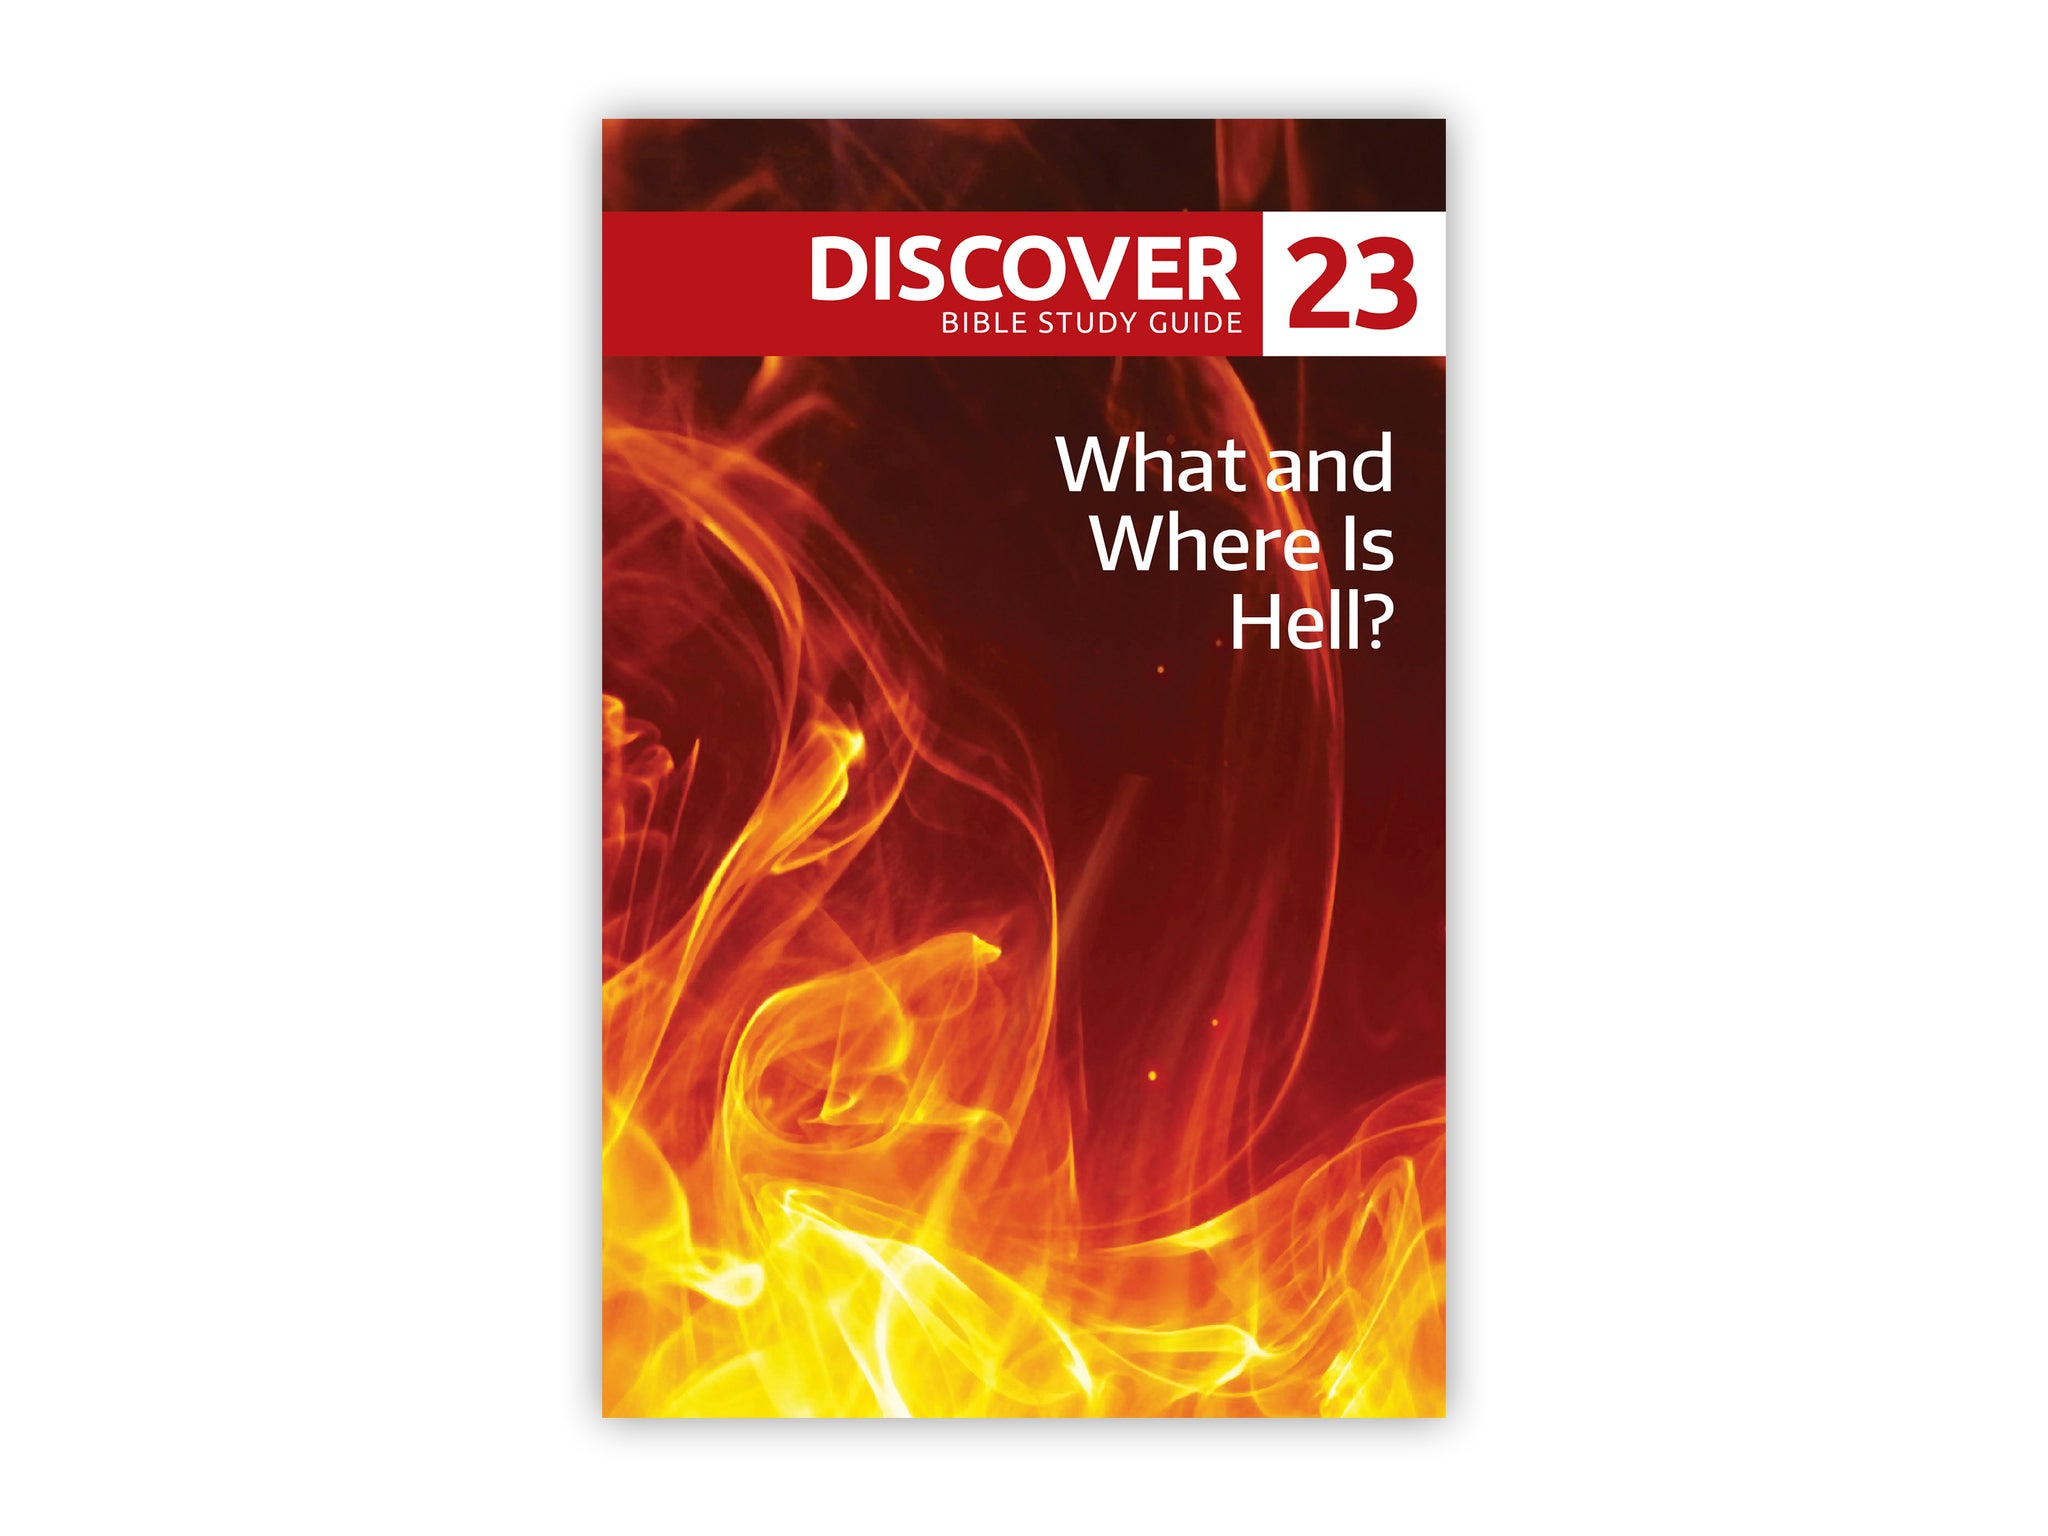 Discover Bible Study Guide #23 - What and Where Is Hell?